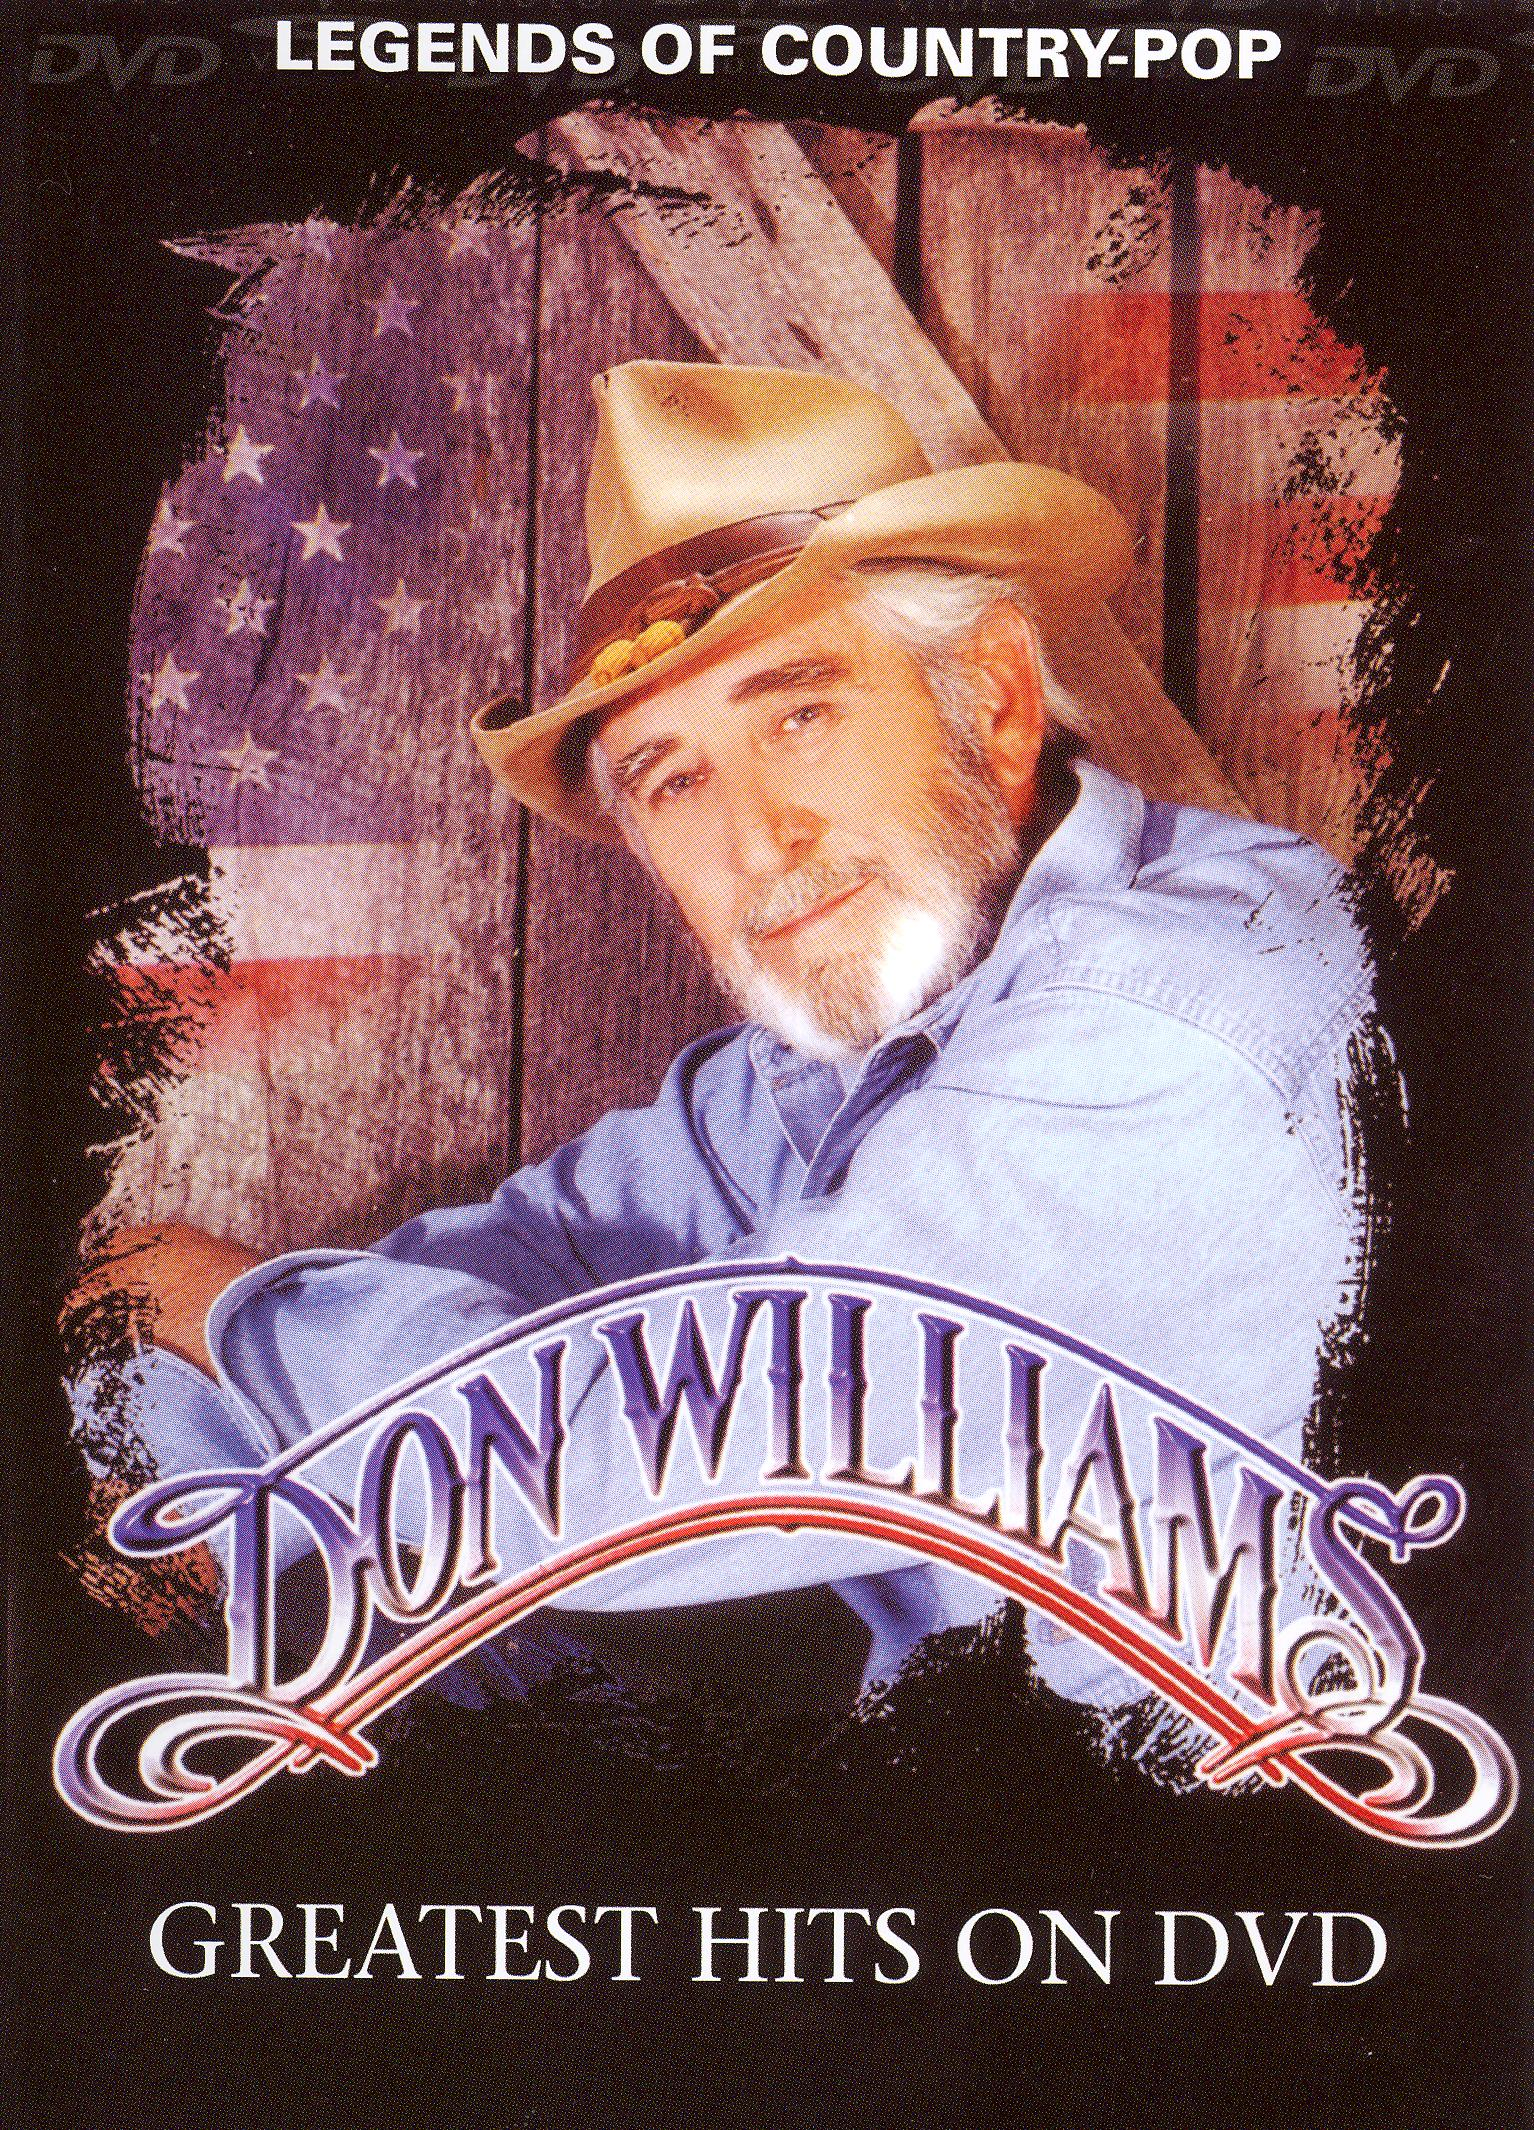 Don Williams: Greatest Hits on DVD